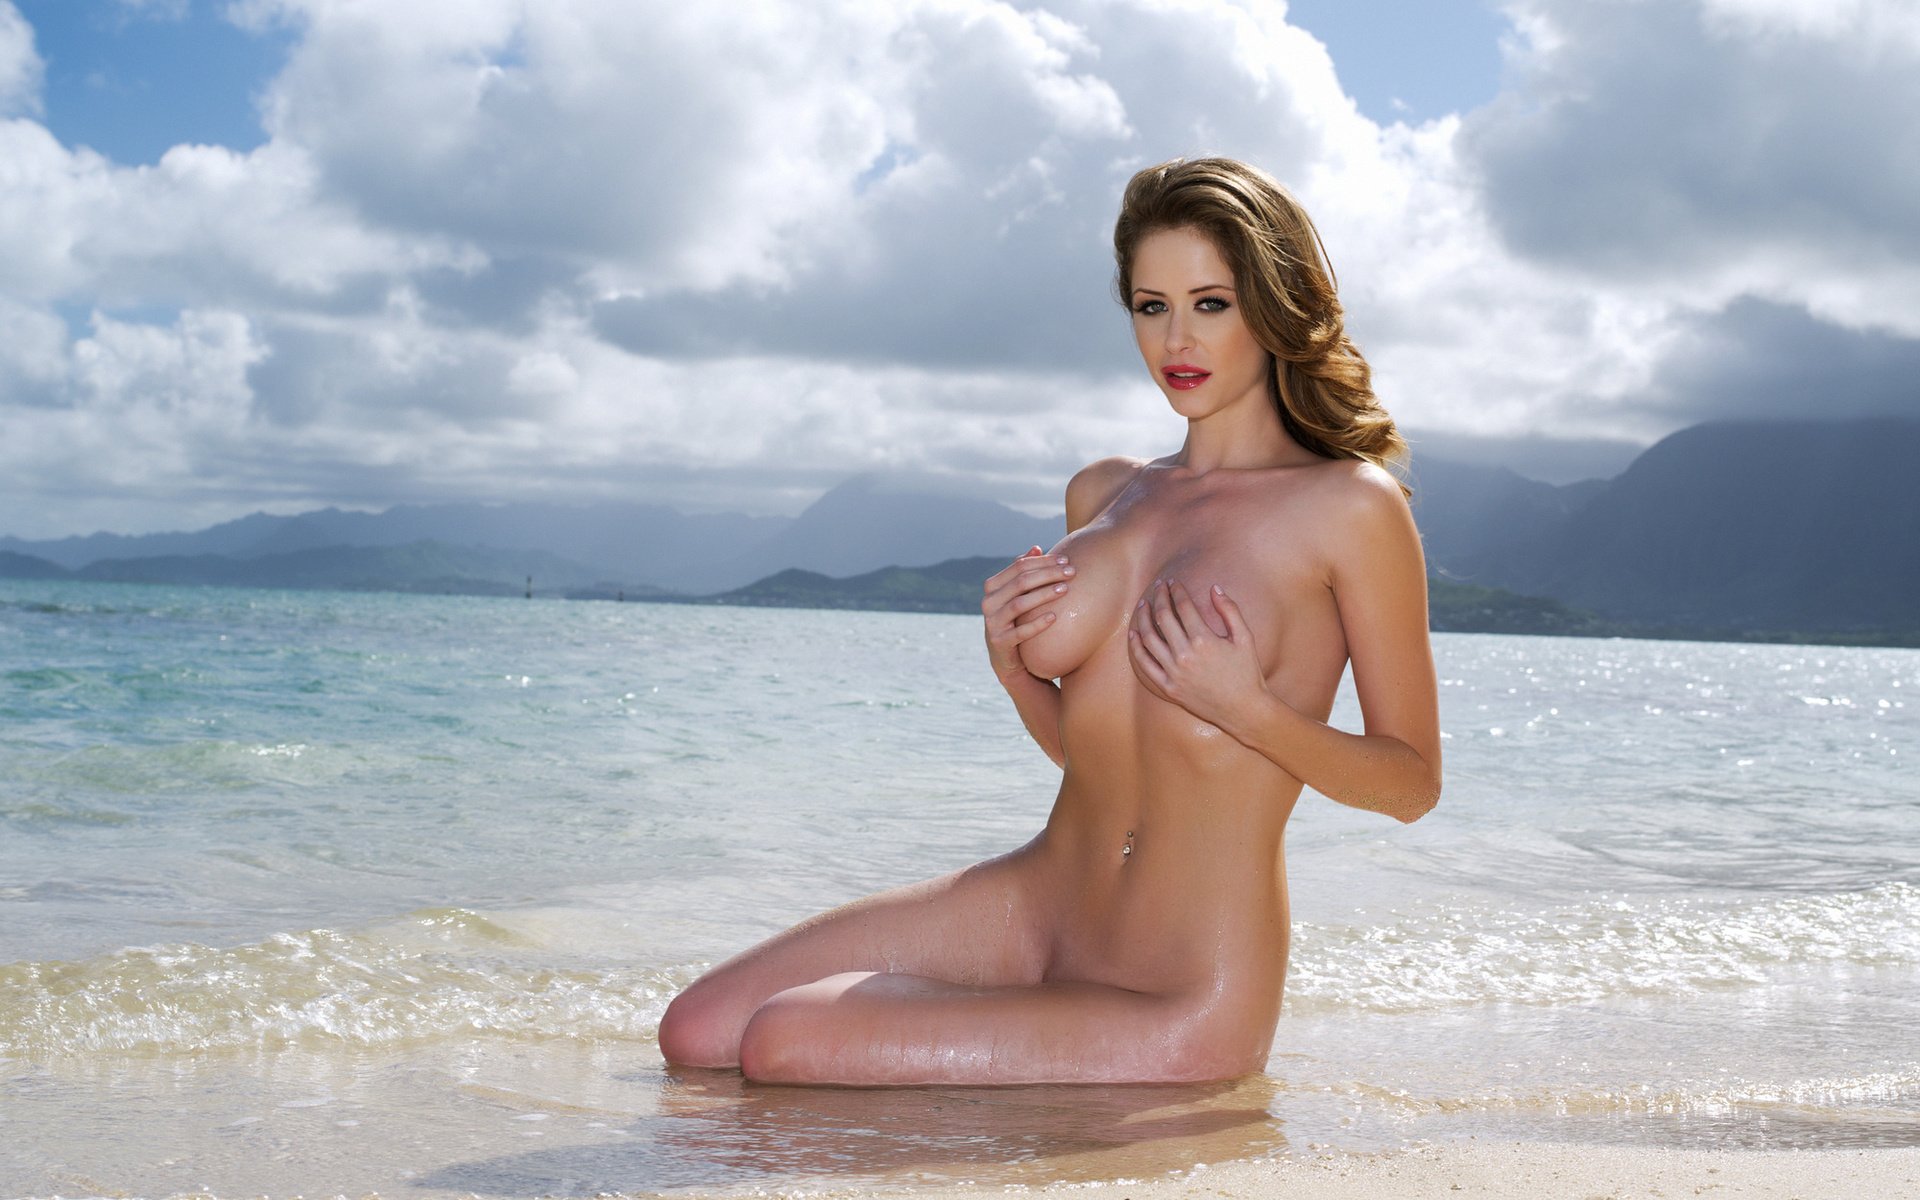 Free pictures of naked hot women